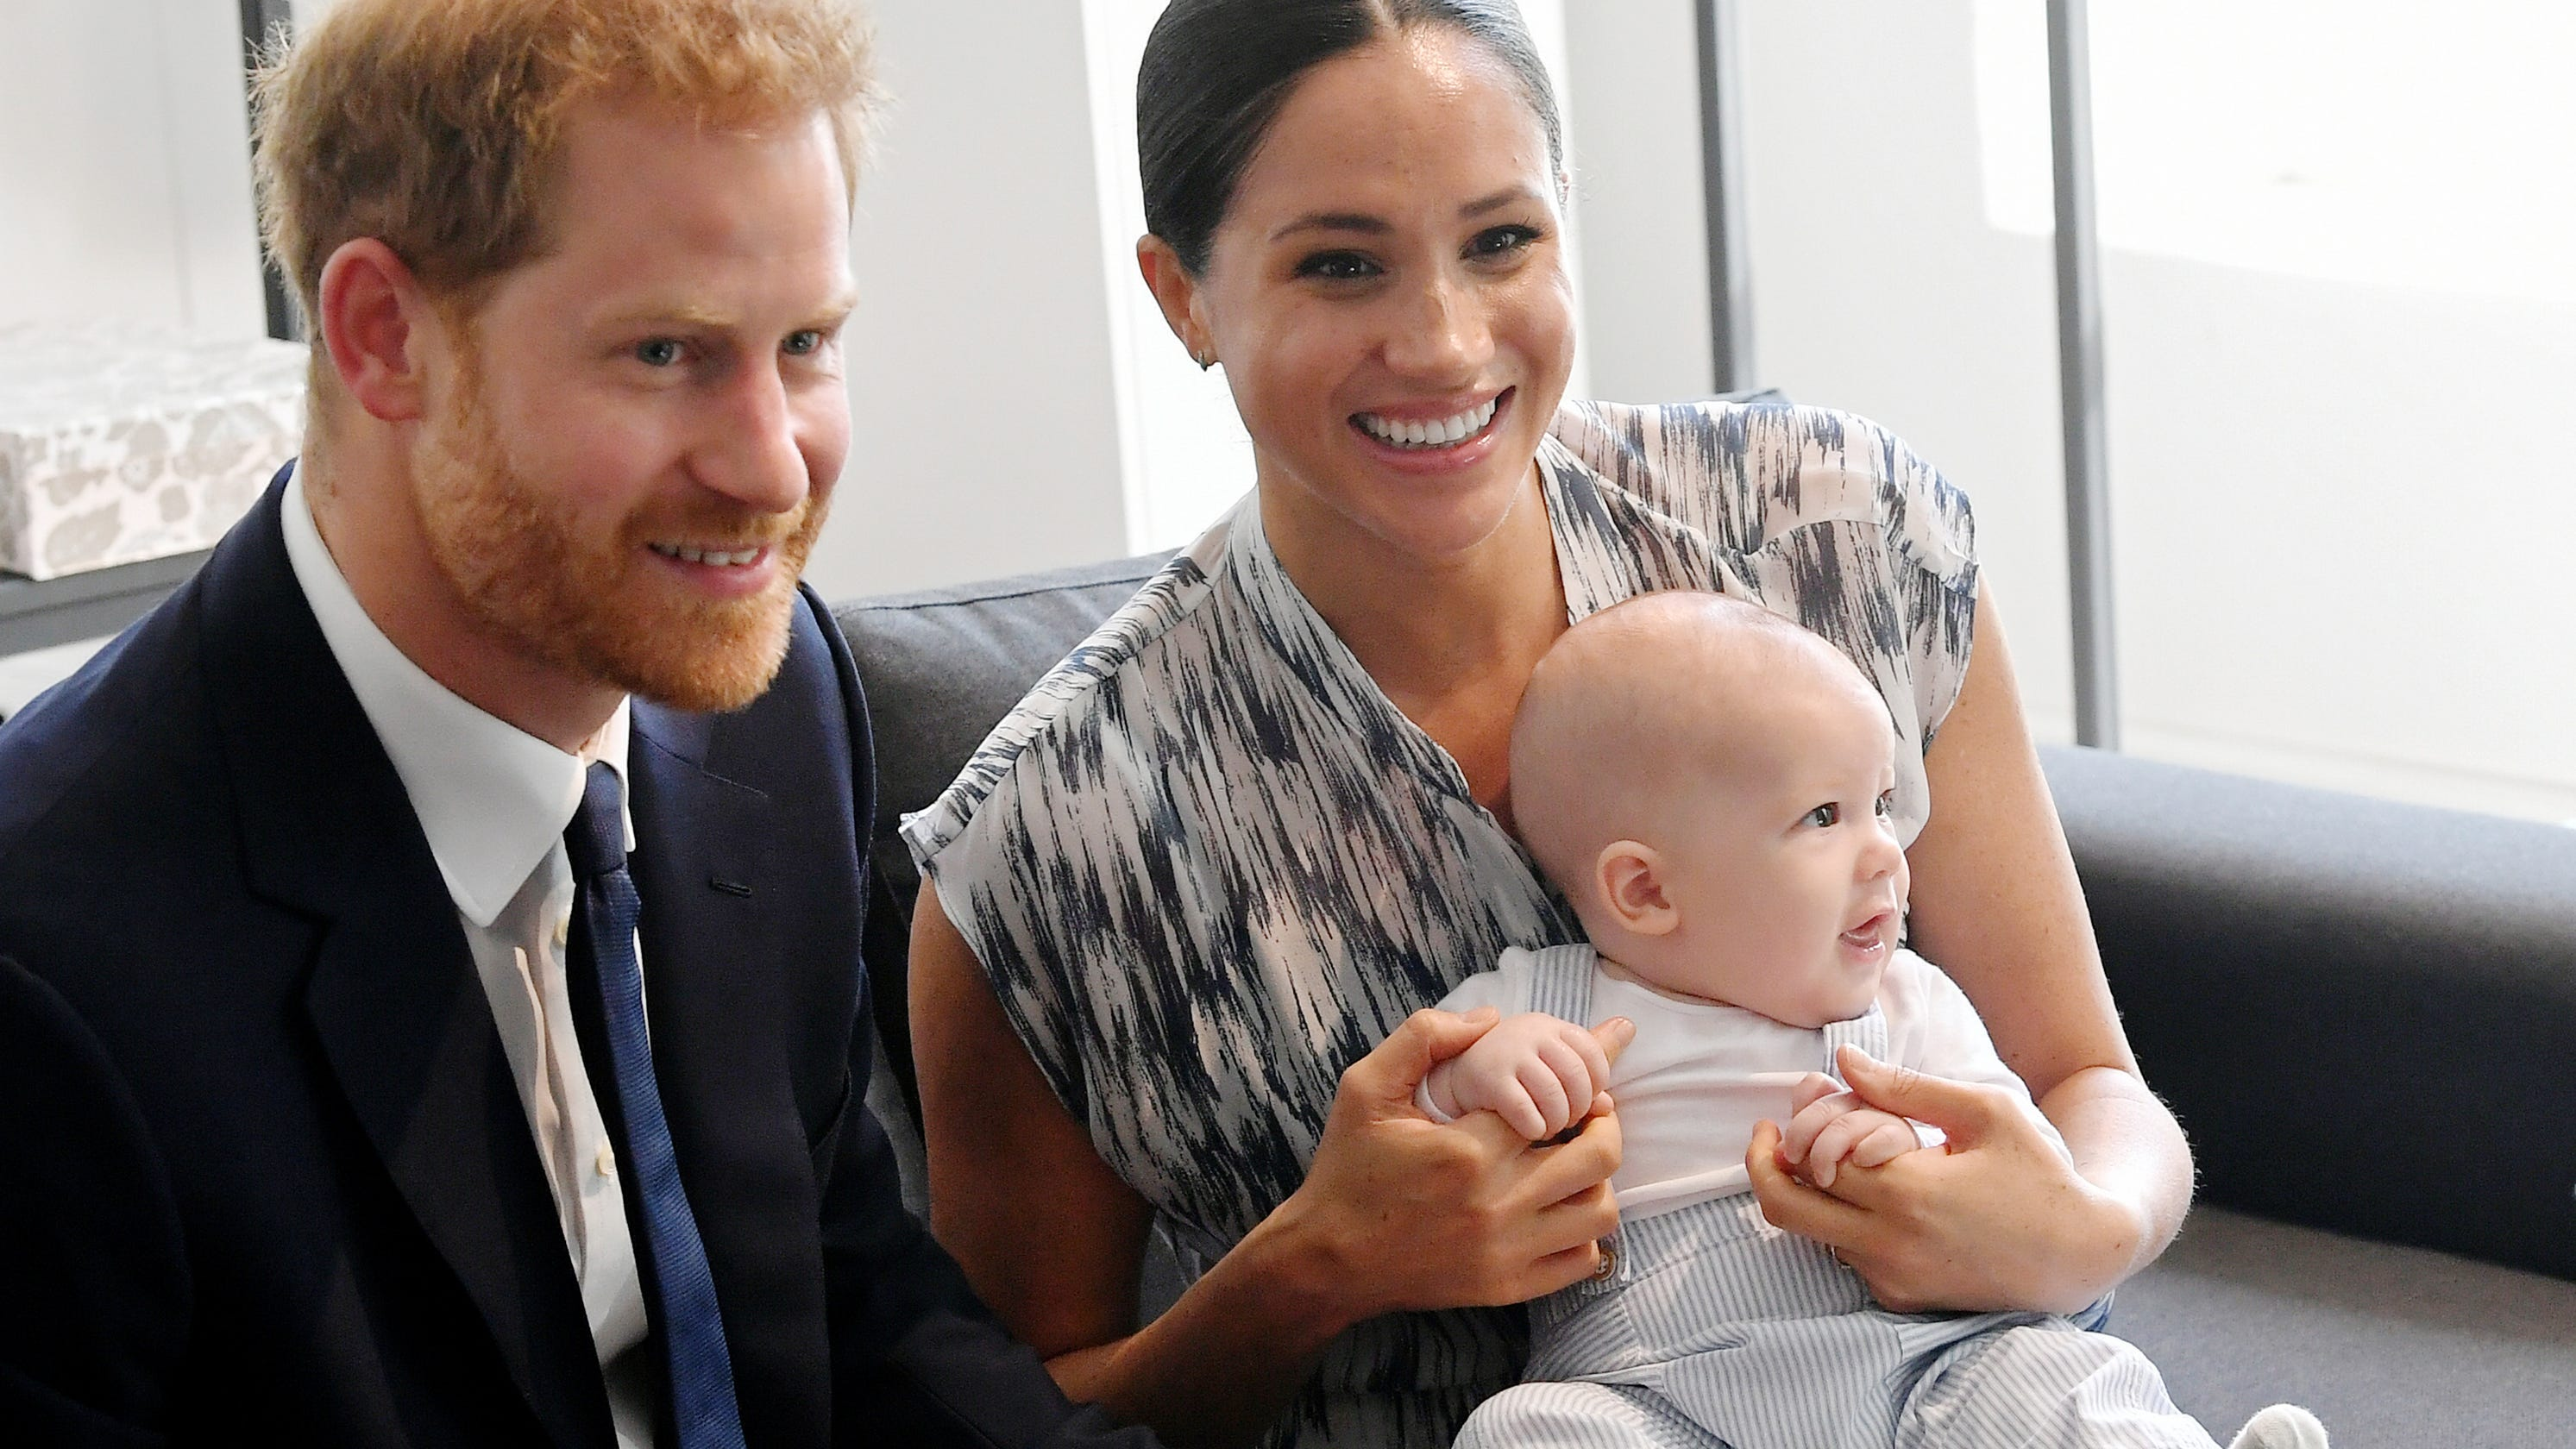 Happy birthday, Archie! Harry and Meghan's baby turns 1 in LA, far from birthplace, royal family